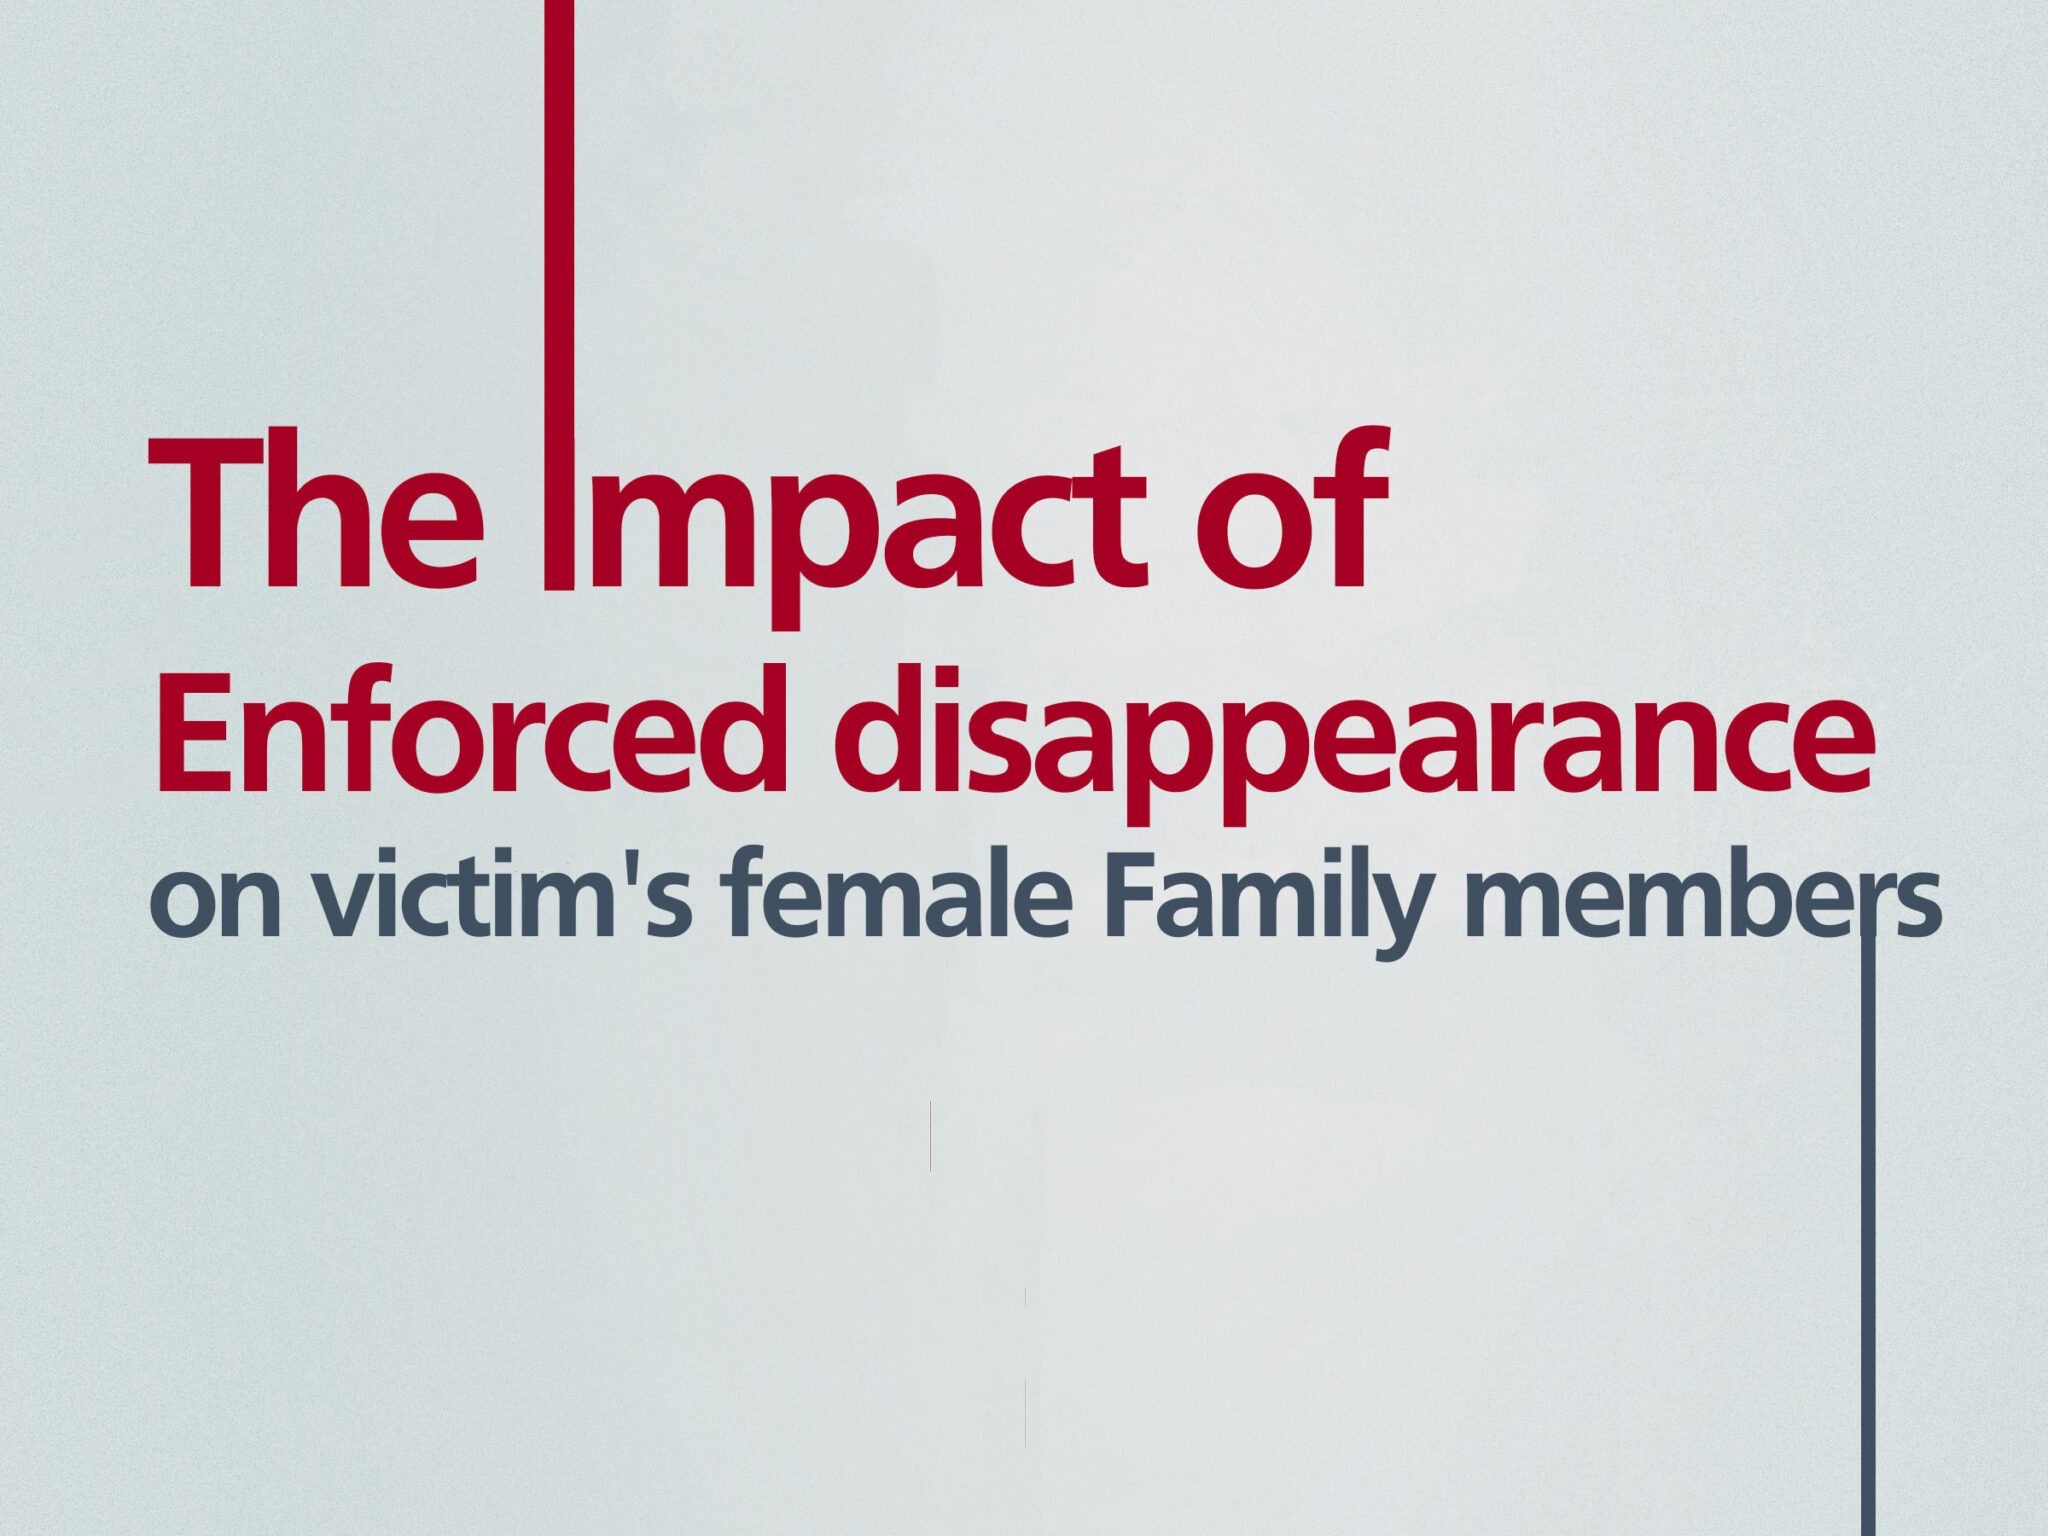 The Impact of Enforced disappearance on victim's female Family members